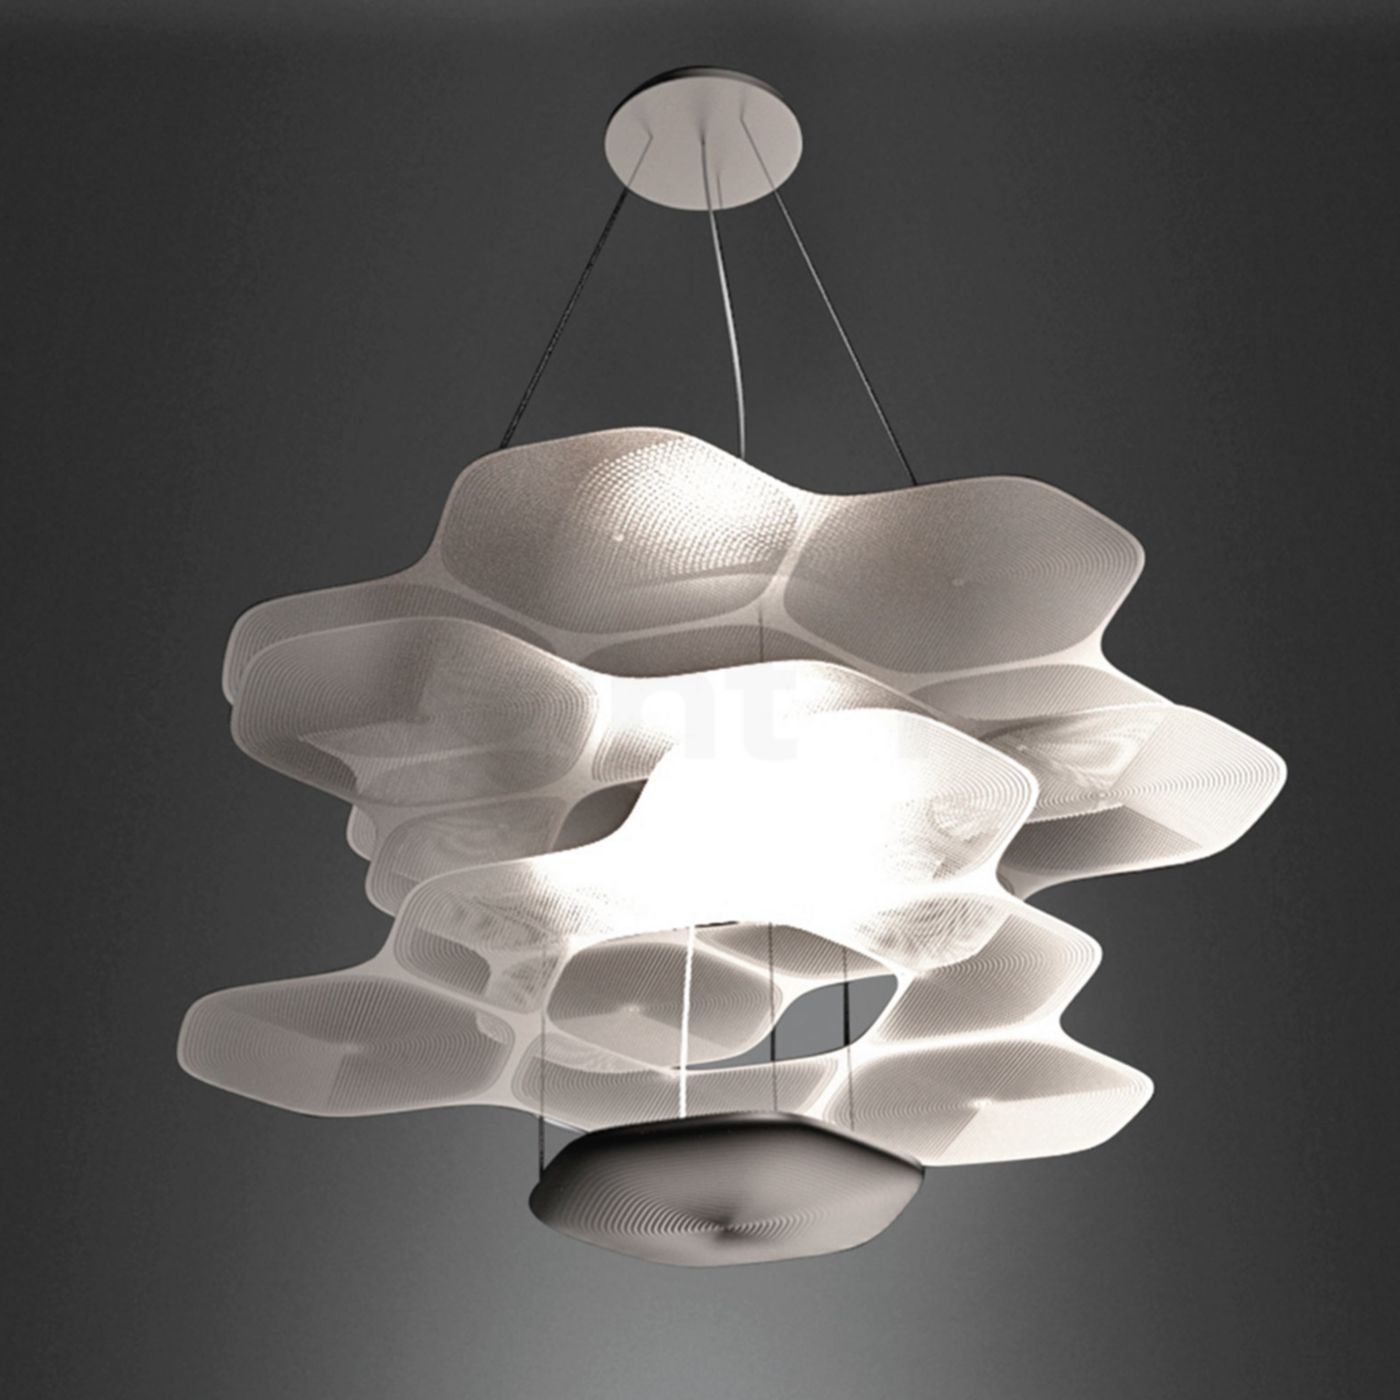 Artemide Ceiling Light Www Gradschoolfairs Com